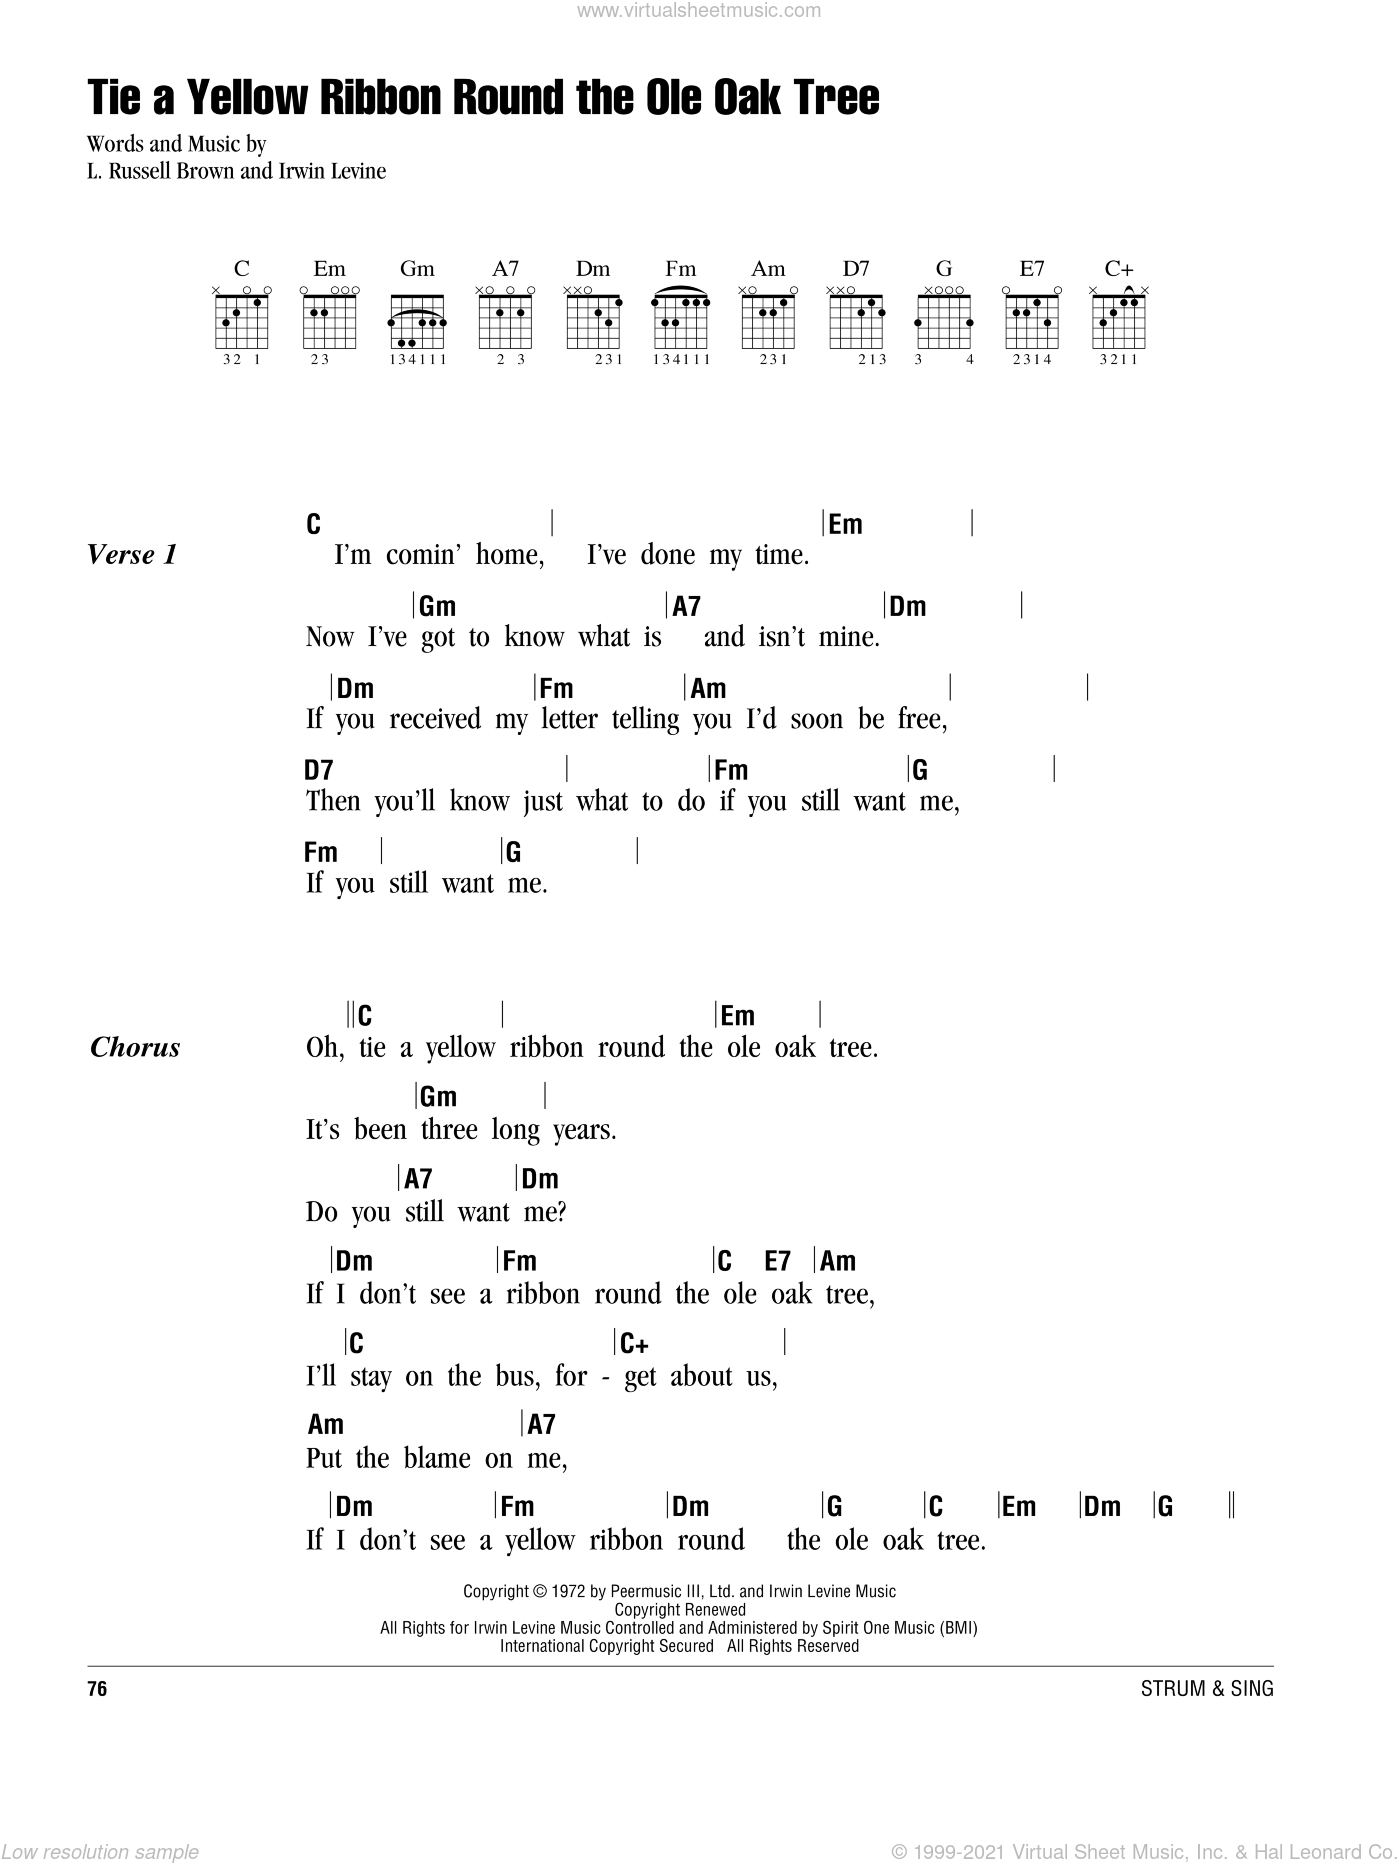 Tie A Yellow Ribbon Round The Ole Oak Tree sheet music for guitar (chords) by Dawn featuring Tony Orlando, Johnny Carver, Irwin Levine and L. Russell Brown, intermediate skill level